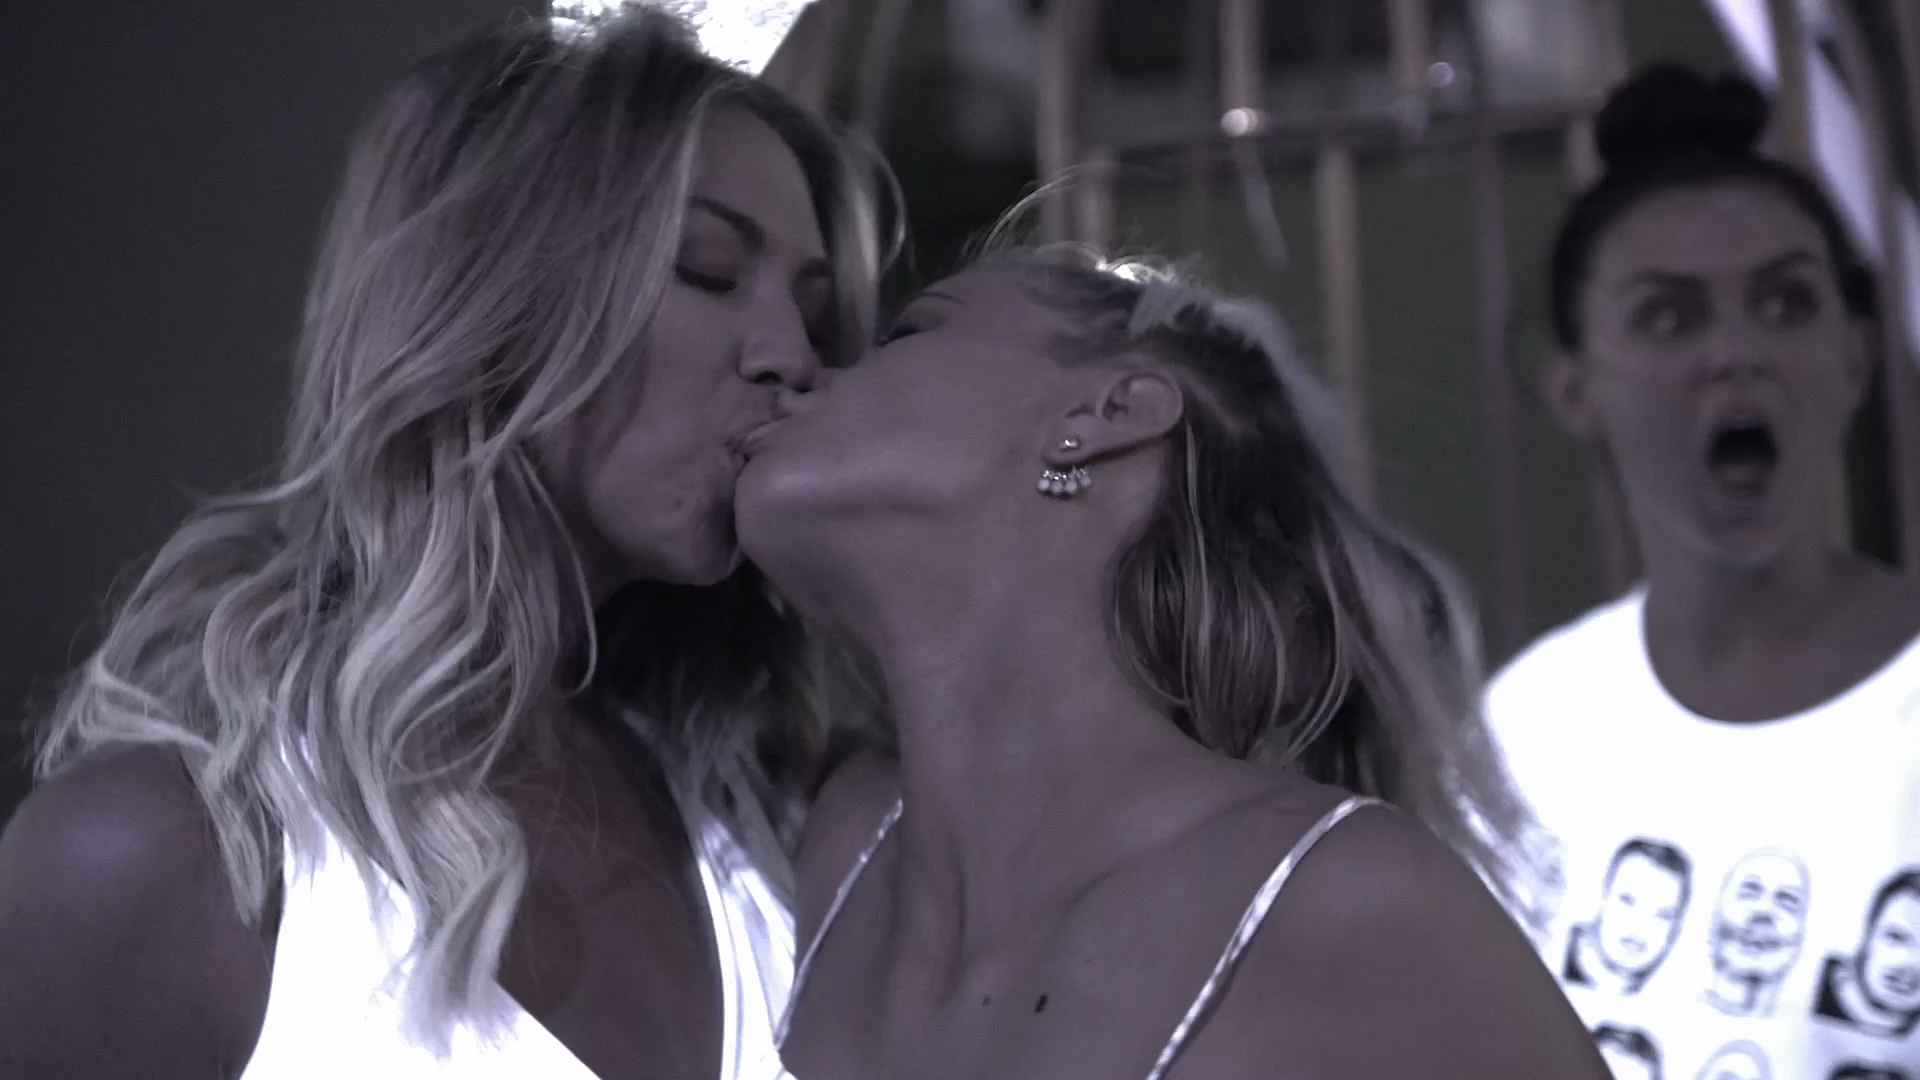 Ariana Madix Has a Make Out Session With Stassi...and Kristen!